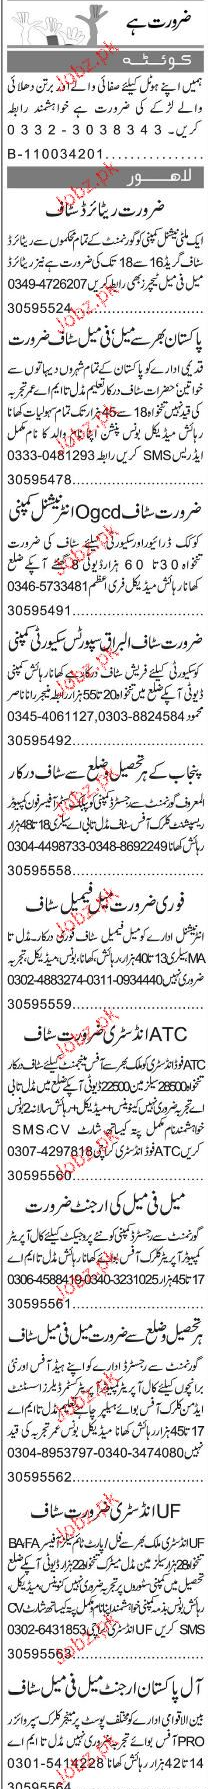 Cleaners, Salesmen, Sales Officers Job Opportunity